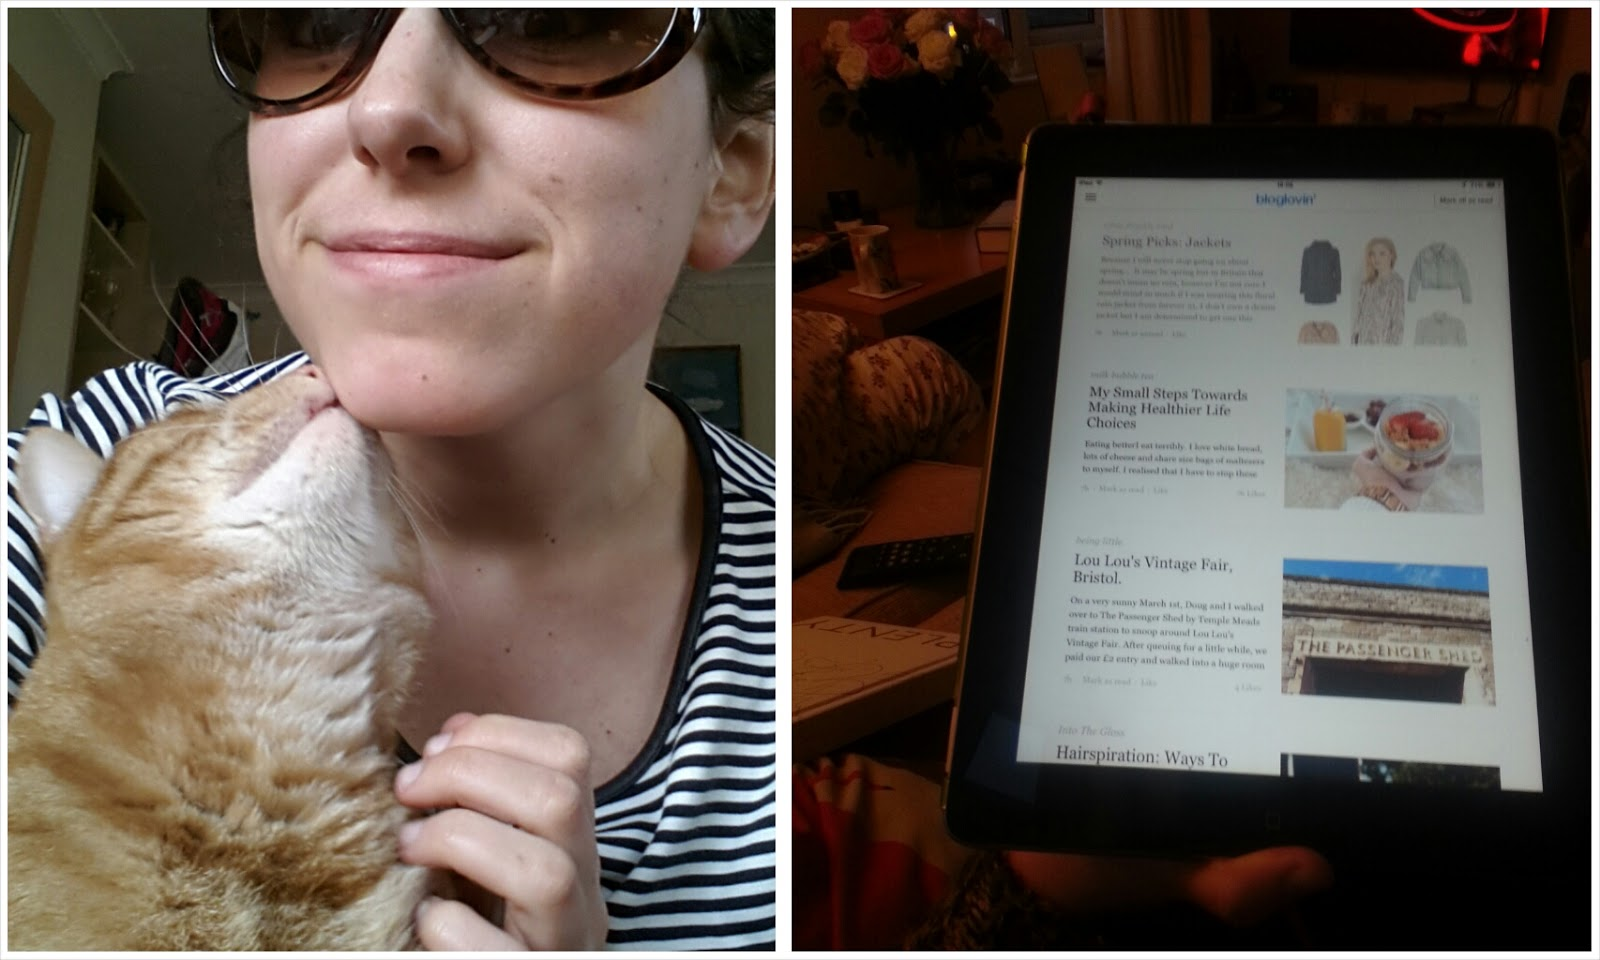 Sunglasses, cat and blogs